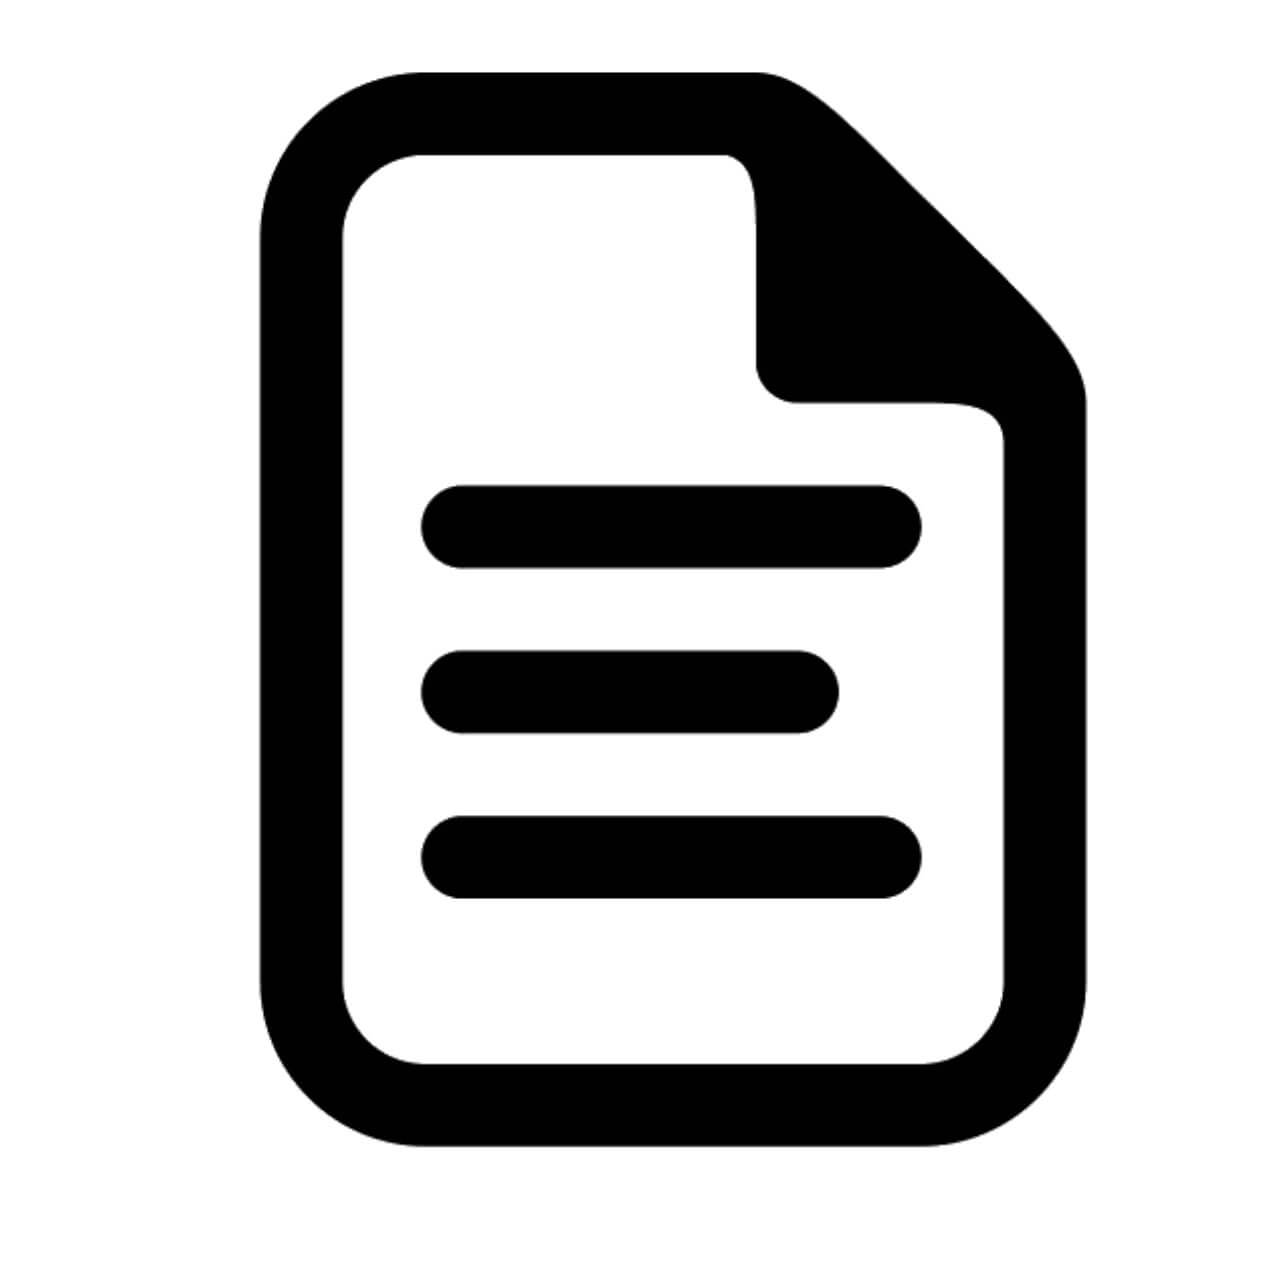 paper document icon - decibullz instructions